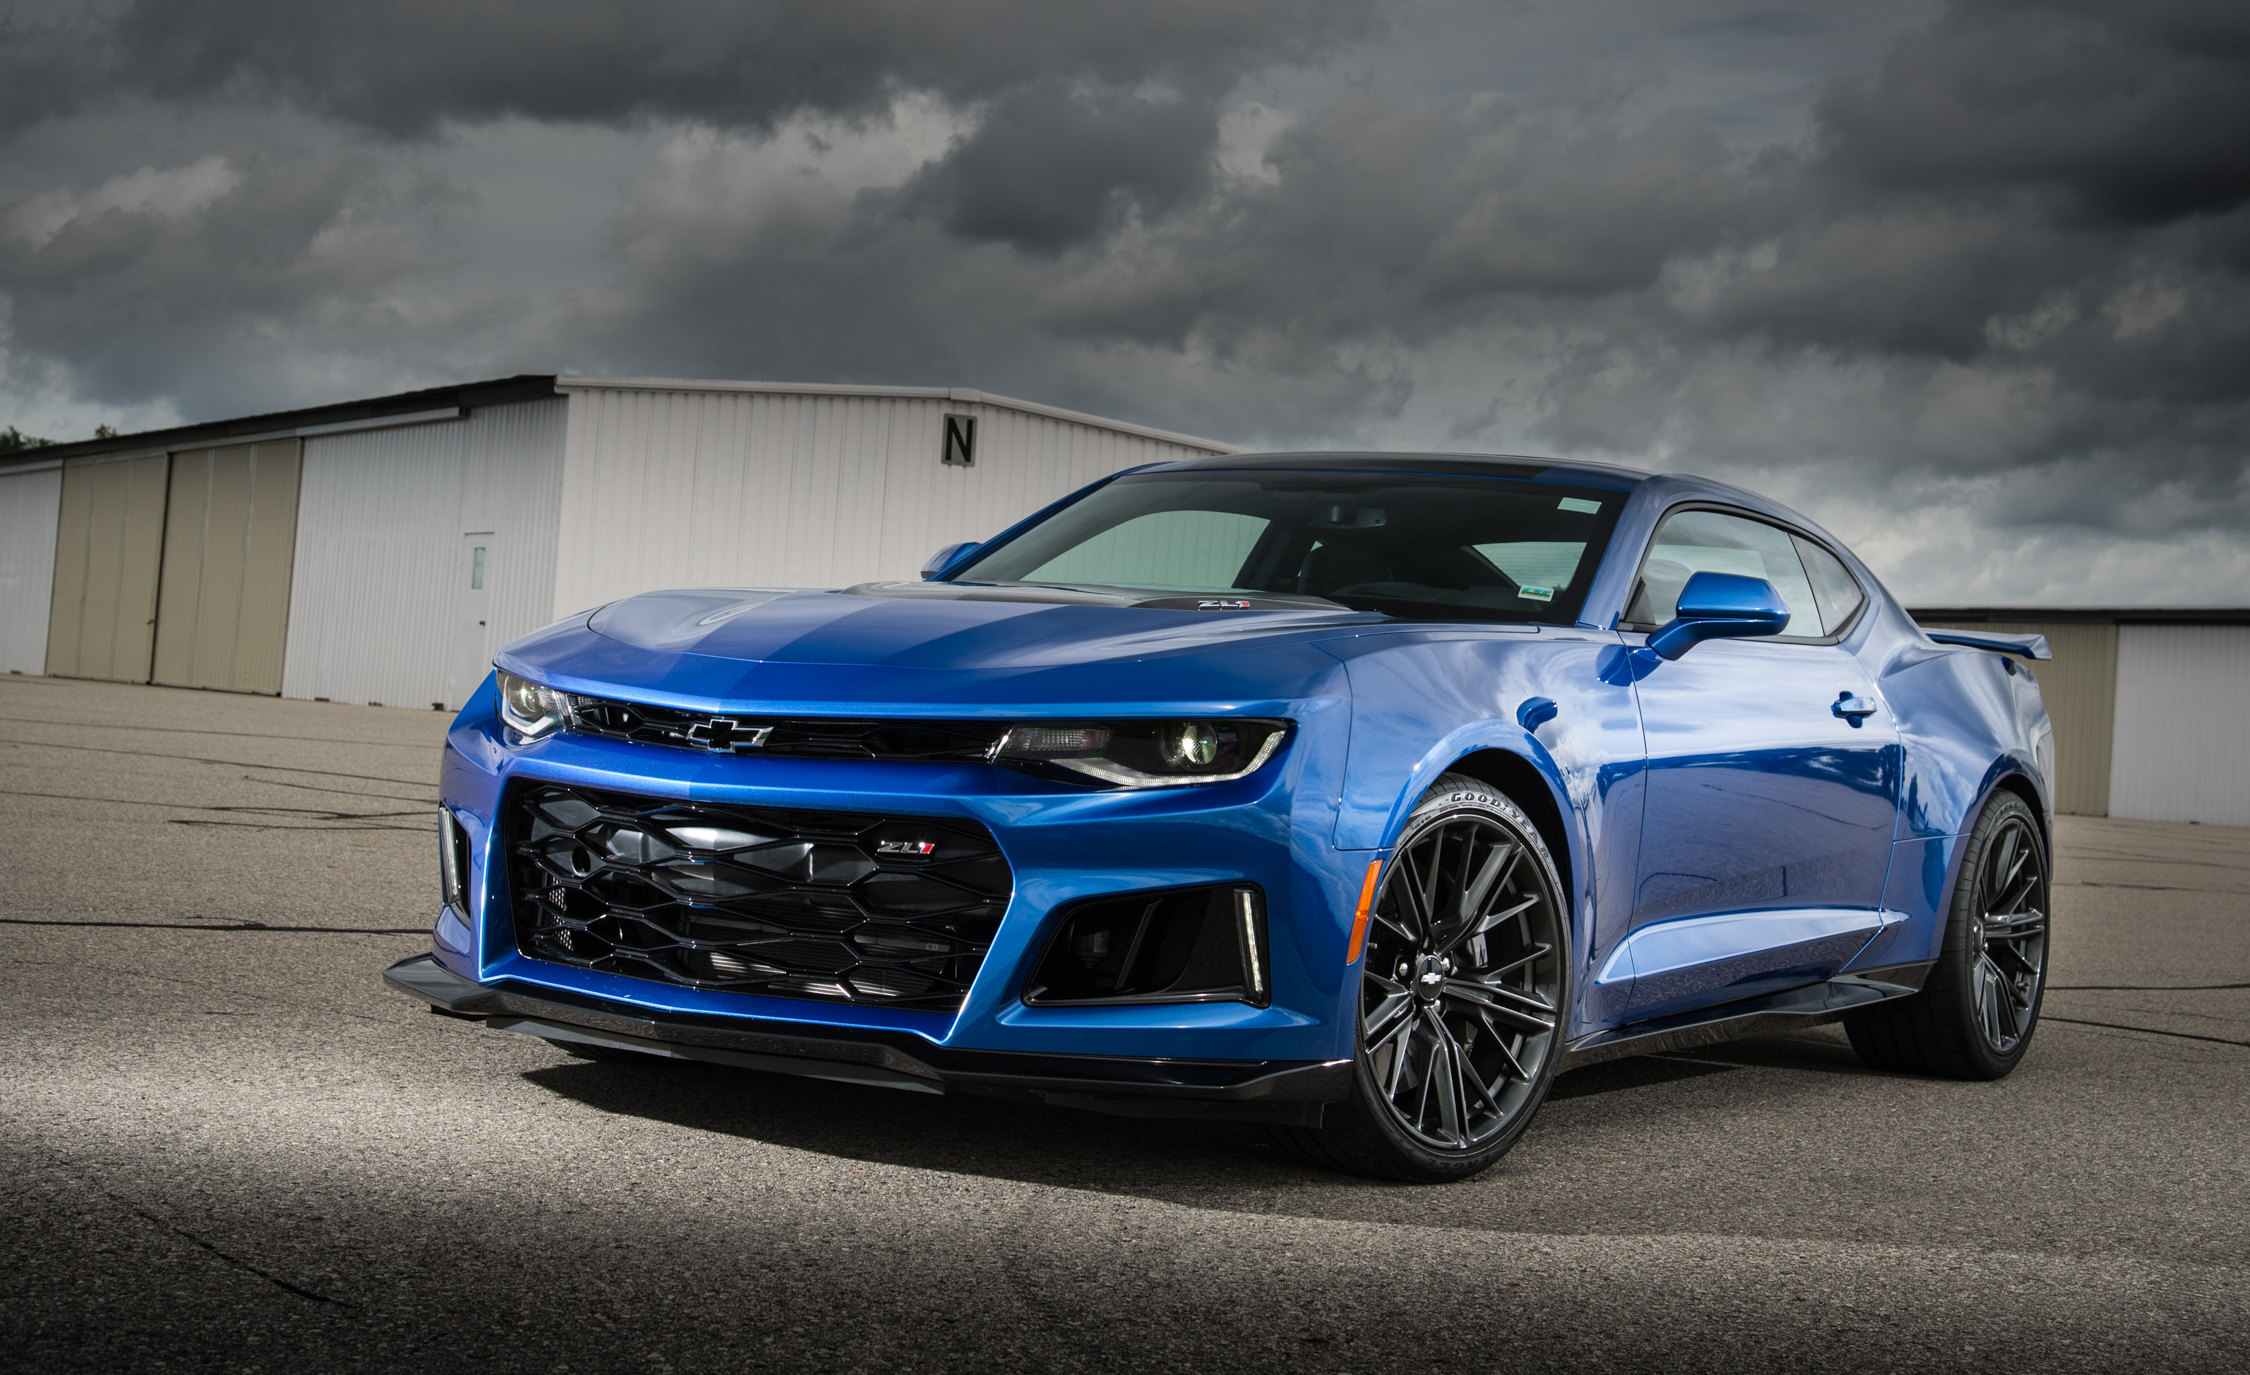 Chevrolet Camaro Zl1 Car And Driver Upcomingcarshq Com